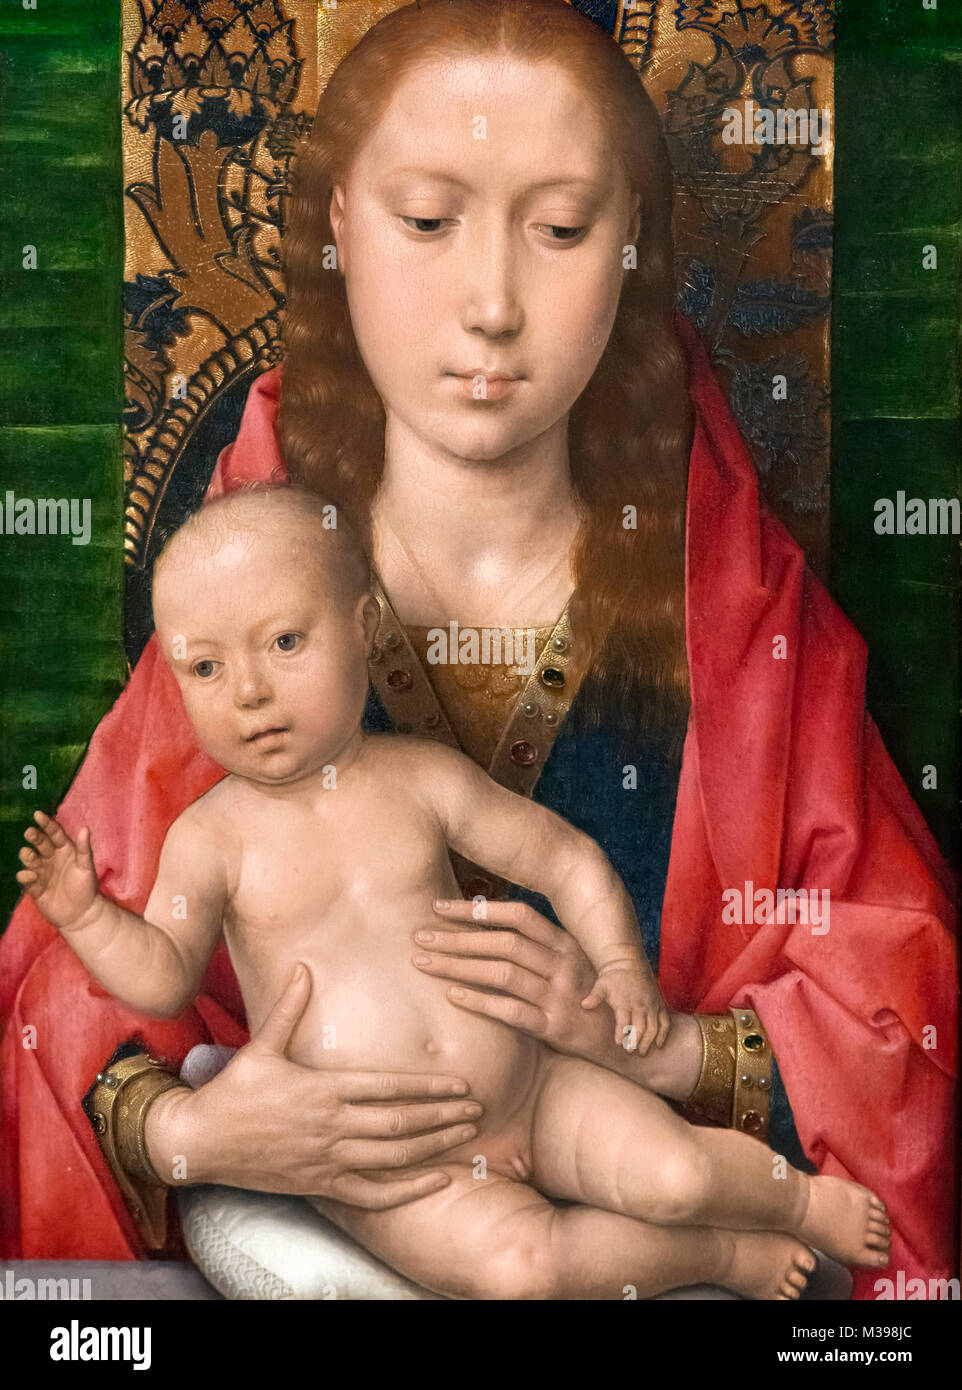 Virgin and Child by Hans Memling (c.1430-1494), oil on oak panel, c.1475 - Stock Image